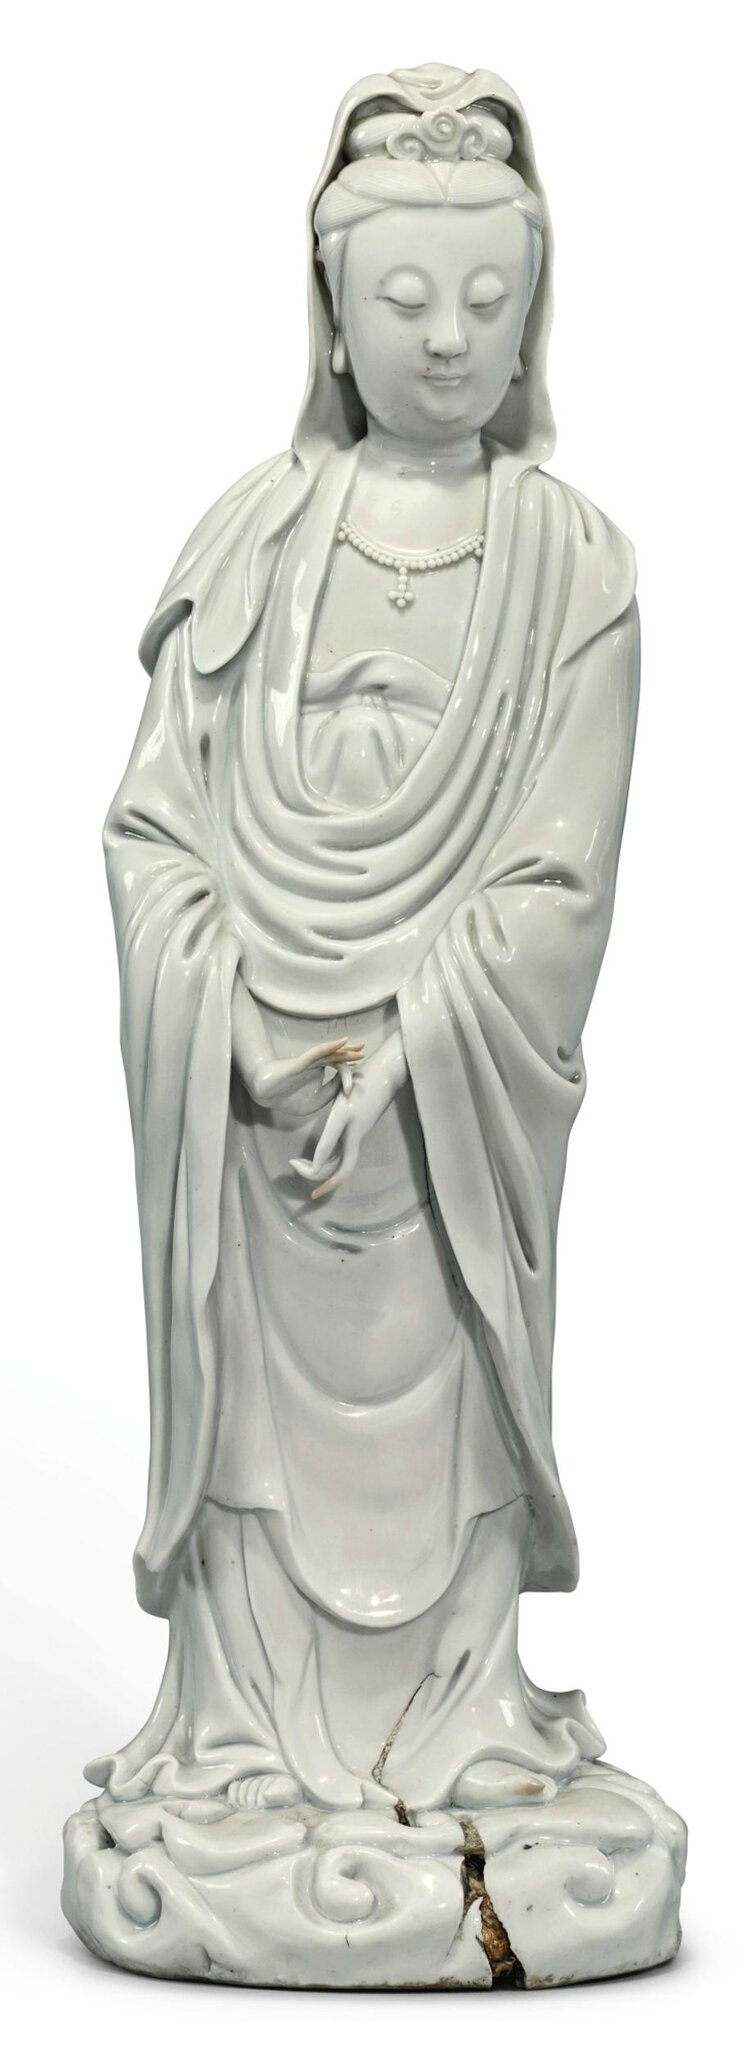 A 'Dehua' figure of Guanyin, Late Ming Dynasty, attributed to Huijiang Shanren